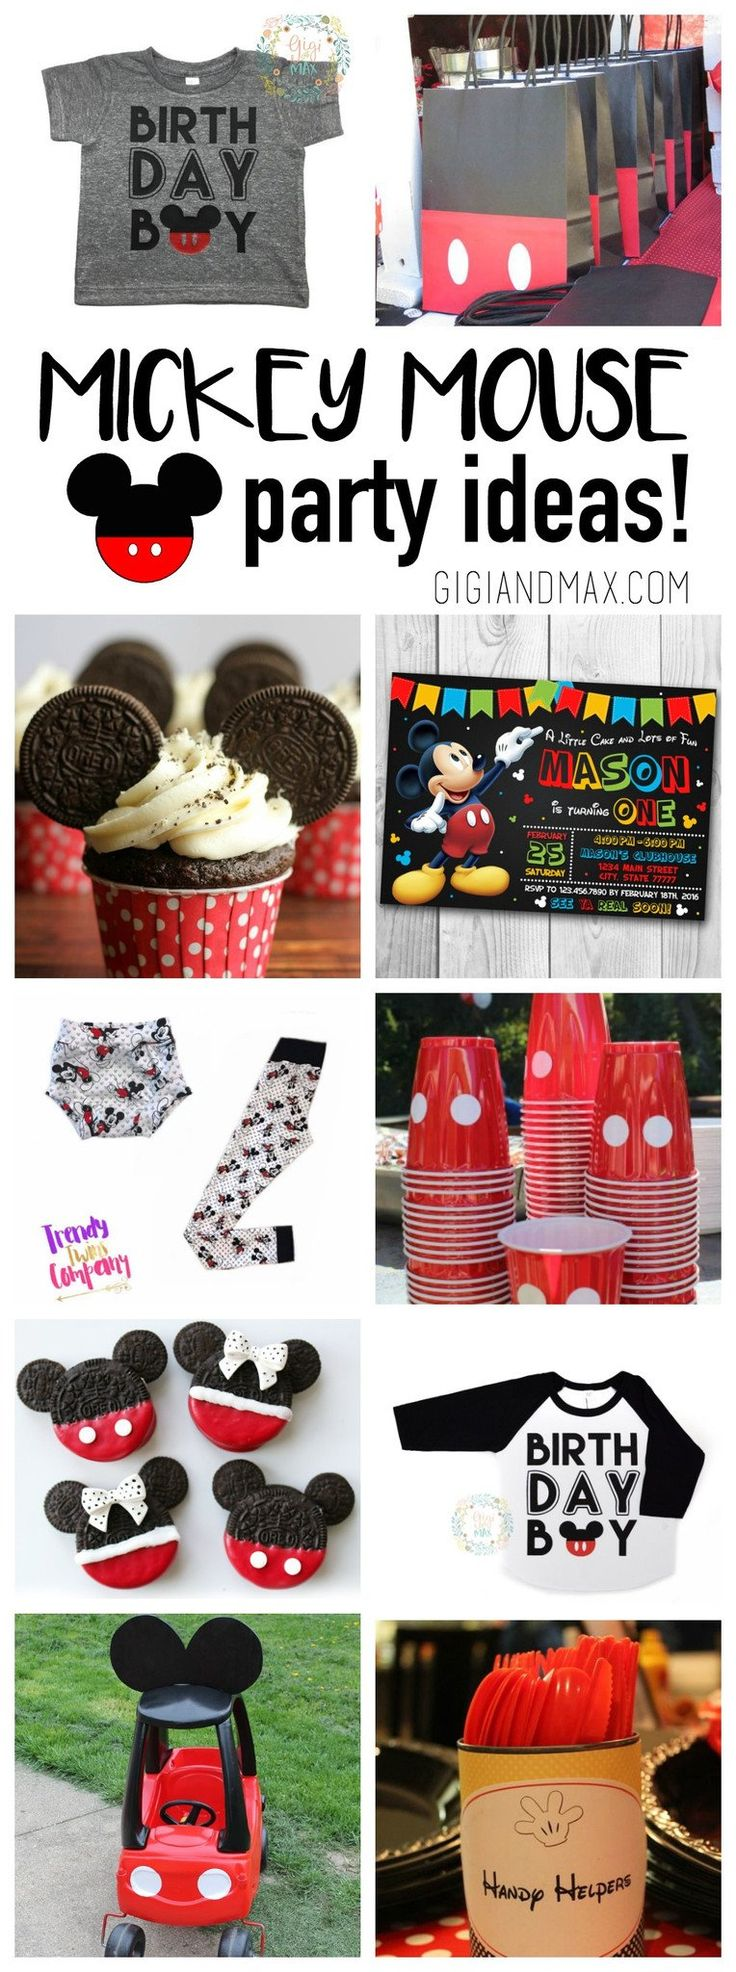 Planning for a birthday party is so fun! But it is a lot of work to get all the details just right! We've found some of our favorite Mickey Mouse party ideas and wanted to share them with you!      Mickey Mouse party favor bags from Catch My Party  Mickey Mouse cupcakes from Lil' Luna  Mickey Mouse invitation from Cute Invitation Mickey Mouse Leggings from Trendy Twins Company (use code Mickey for 20% off) Mickey cups from Catch My Party Mickey + Minnie Oreo cookies from Living L...